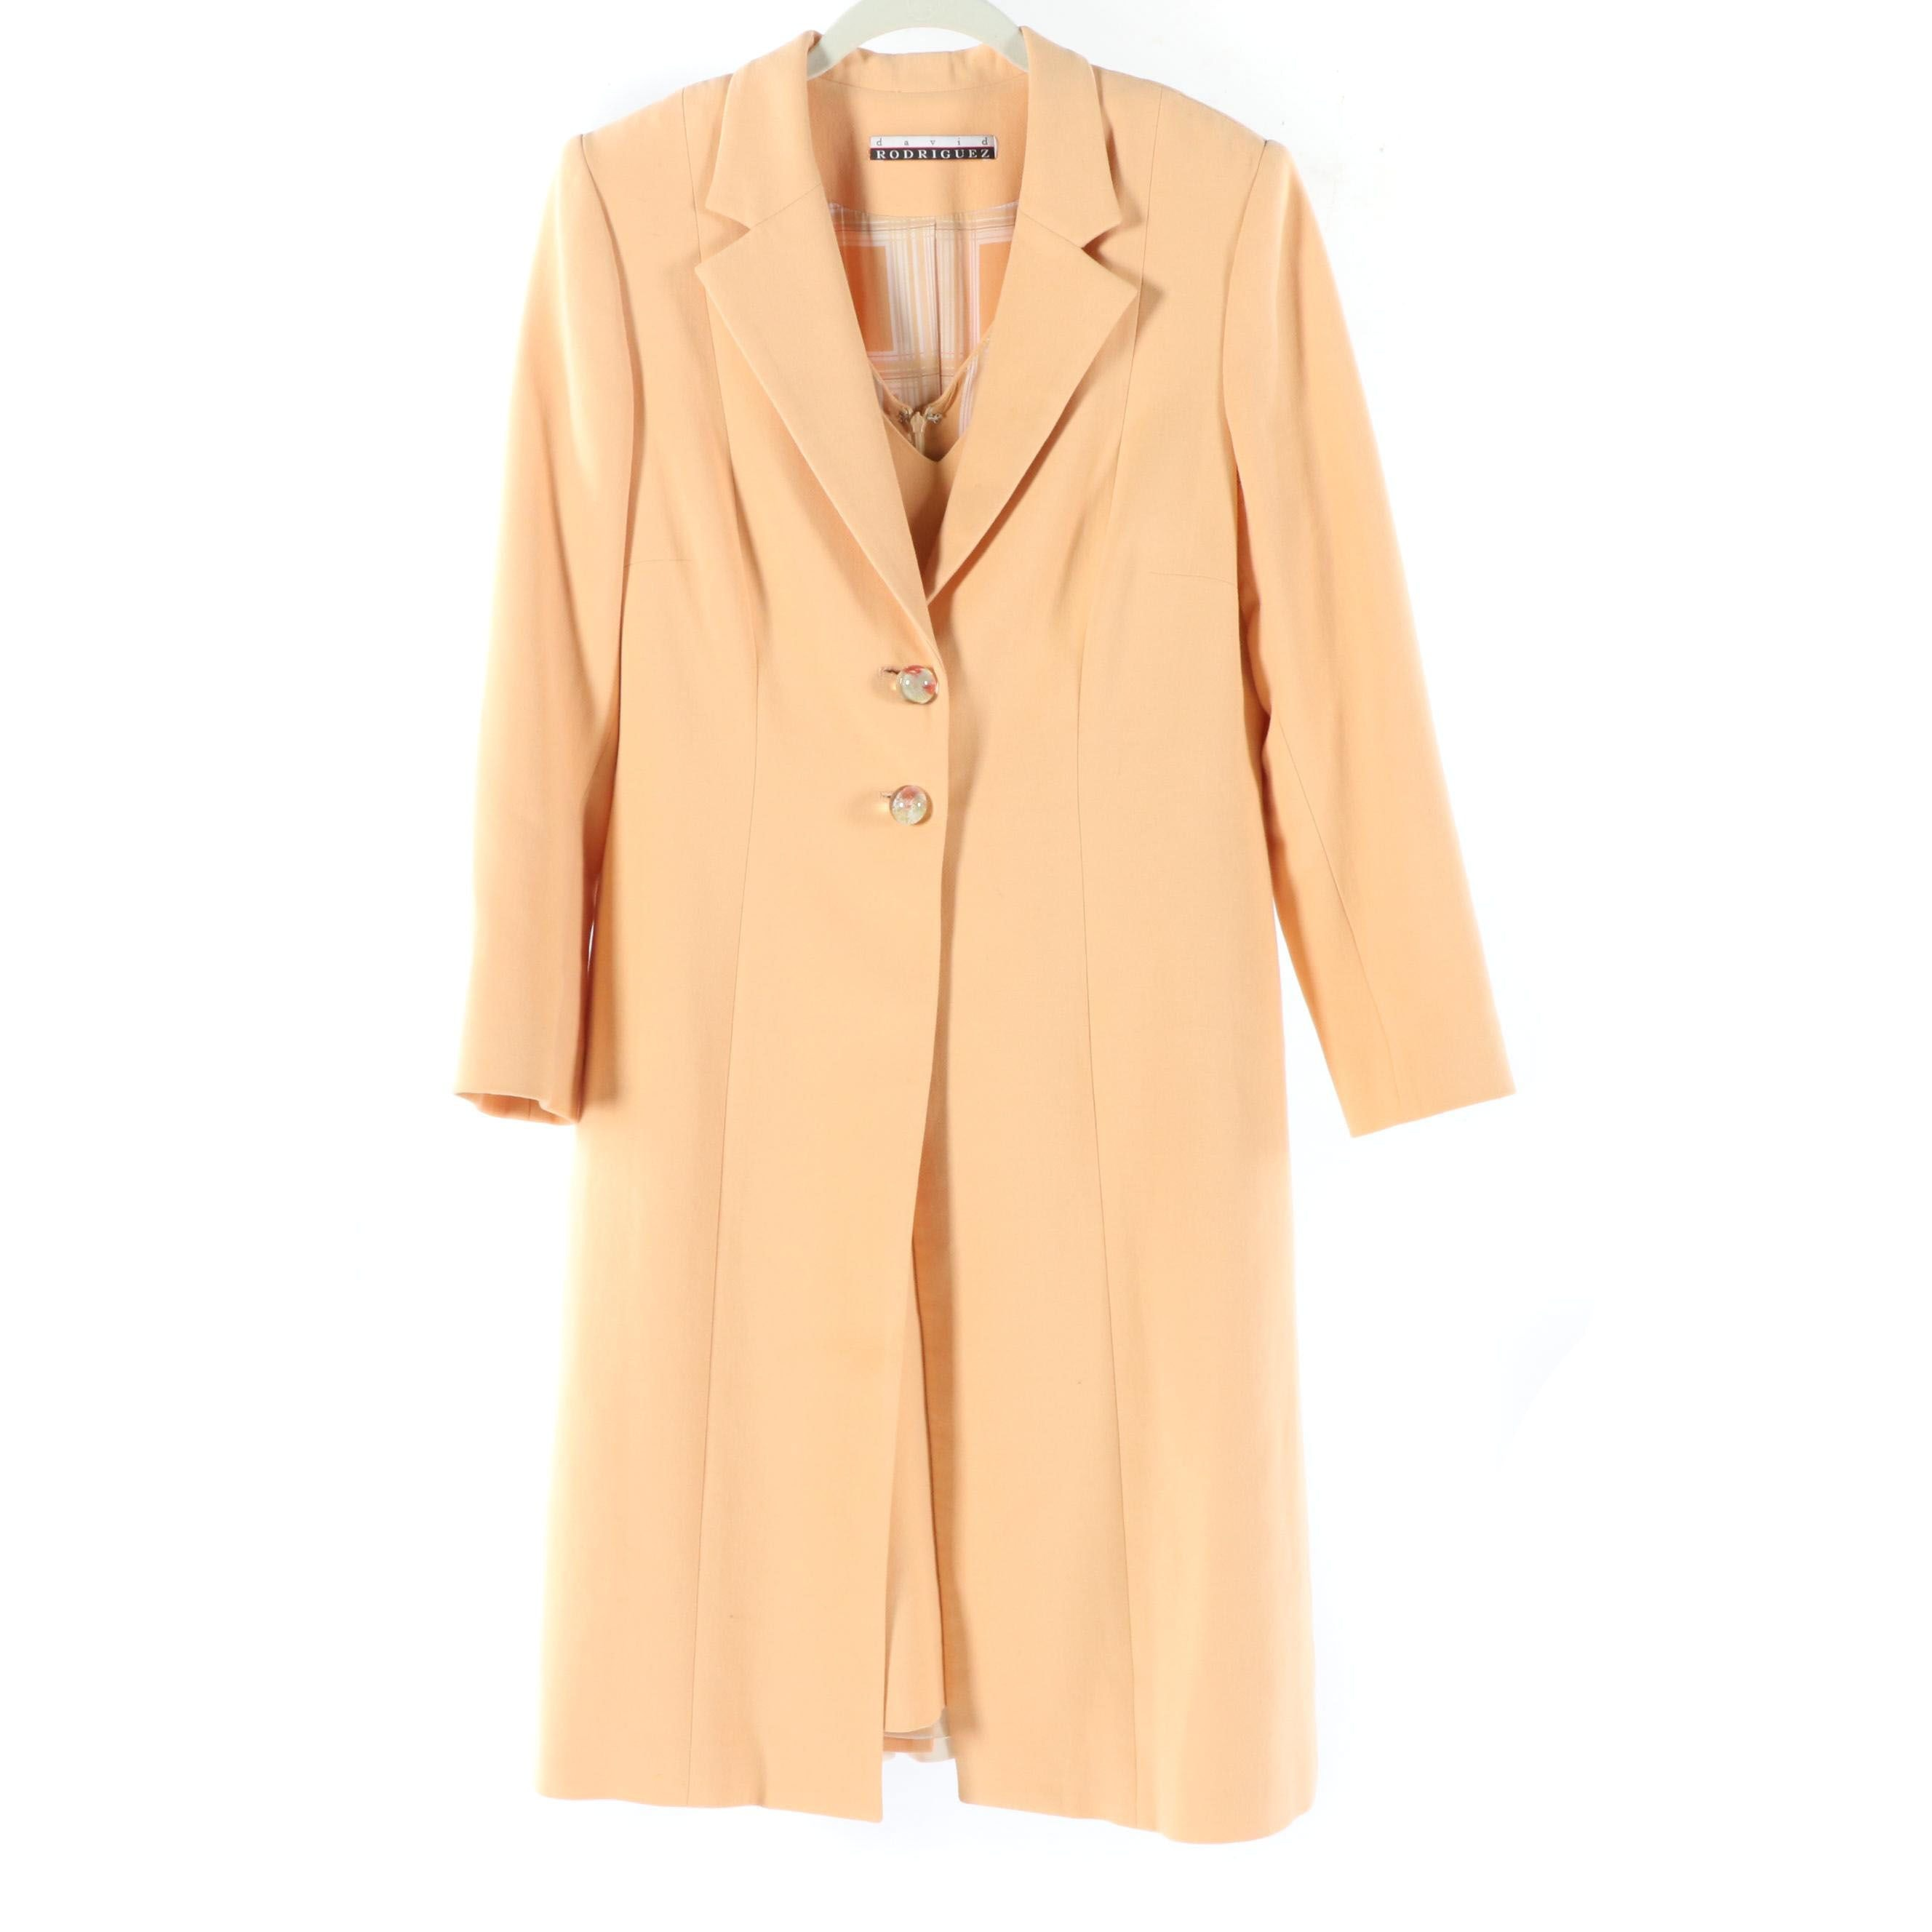 David Rodriguez Peach Dress Suit